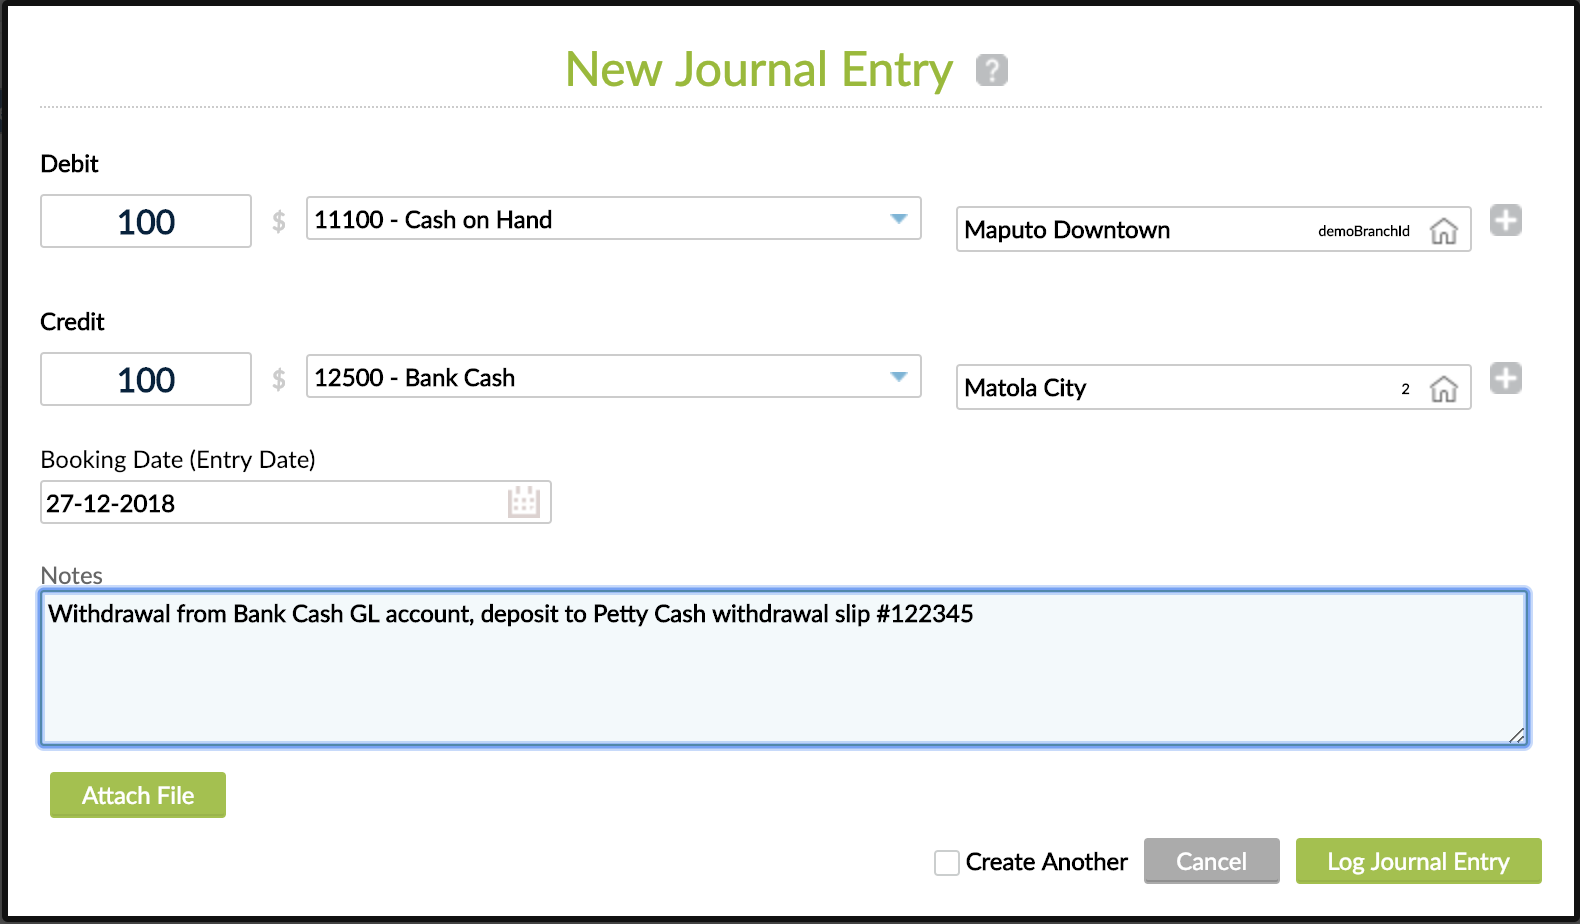 New Journal Entry view - Manual JE screen with fields like Debit/Credit, GL Account, Branch, Booking Date and Notes. The buttons found are Attach File, Cancel and Log Journal Entry.